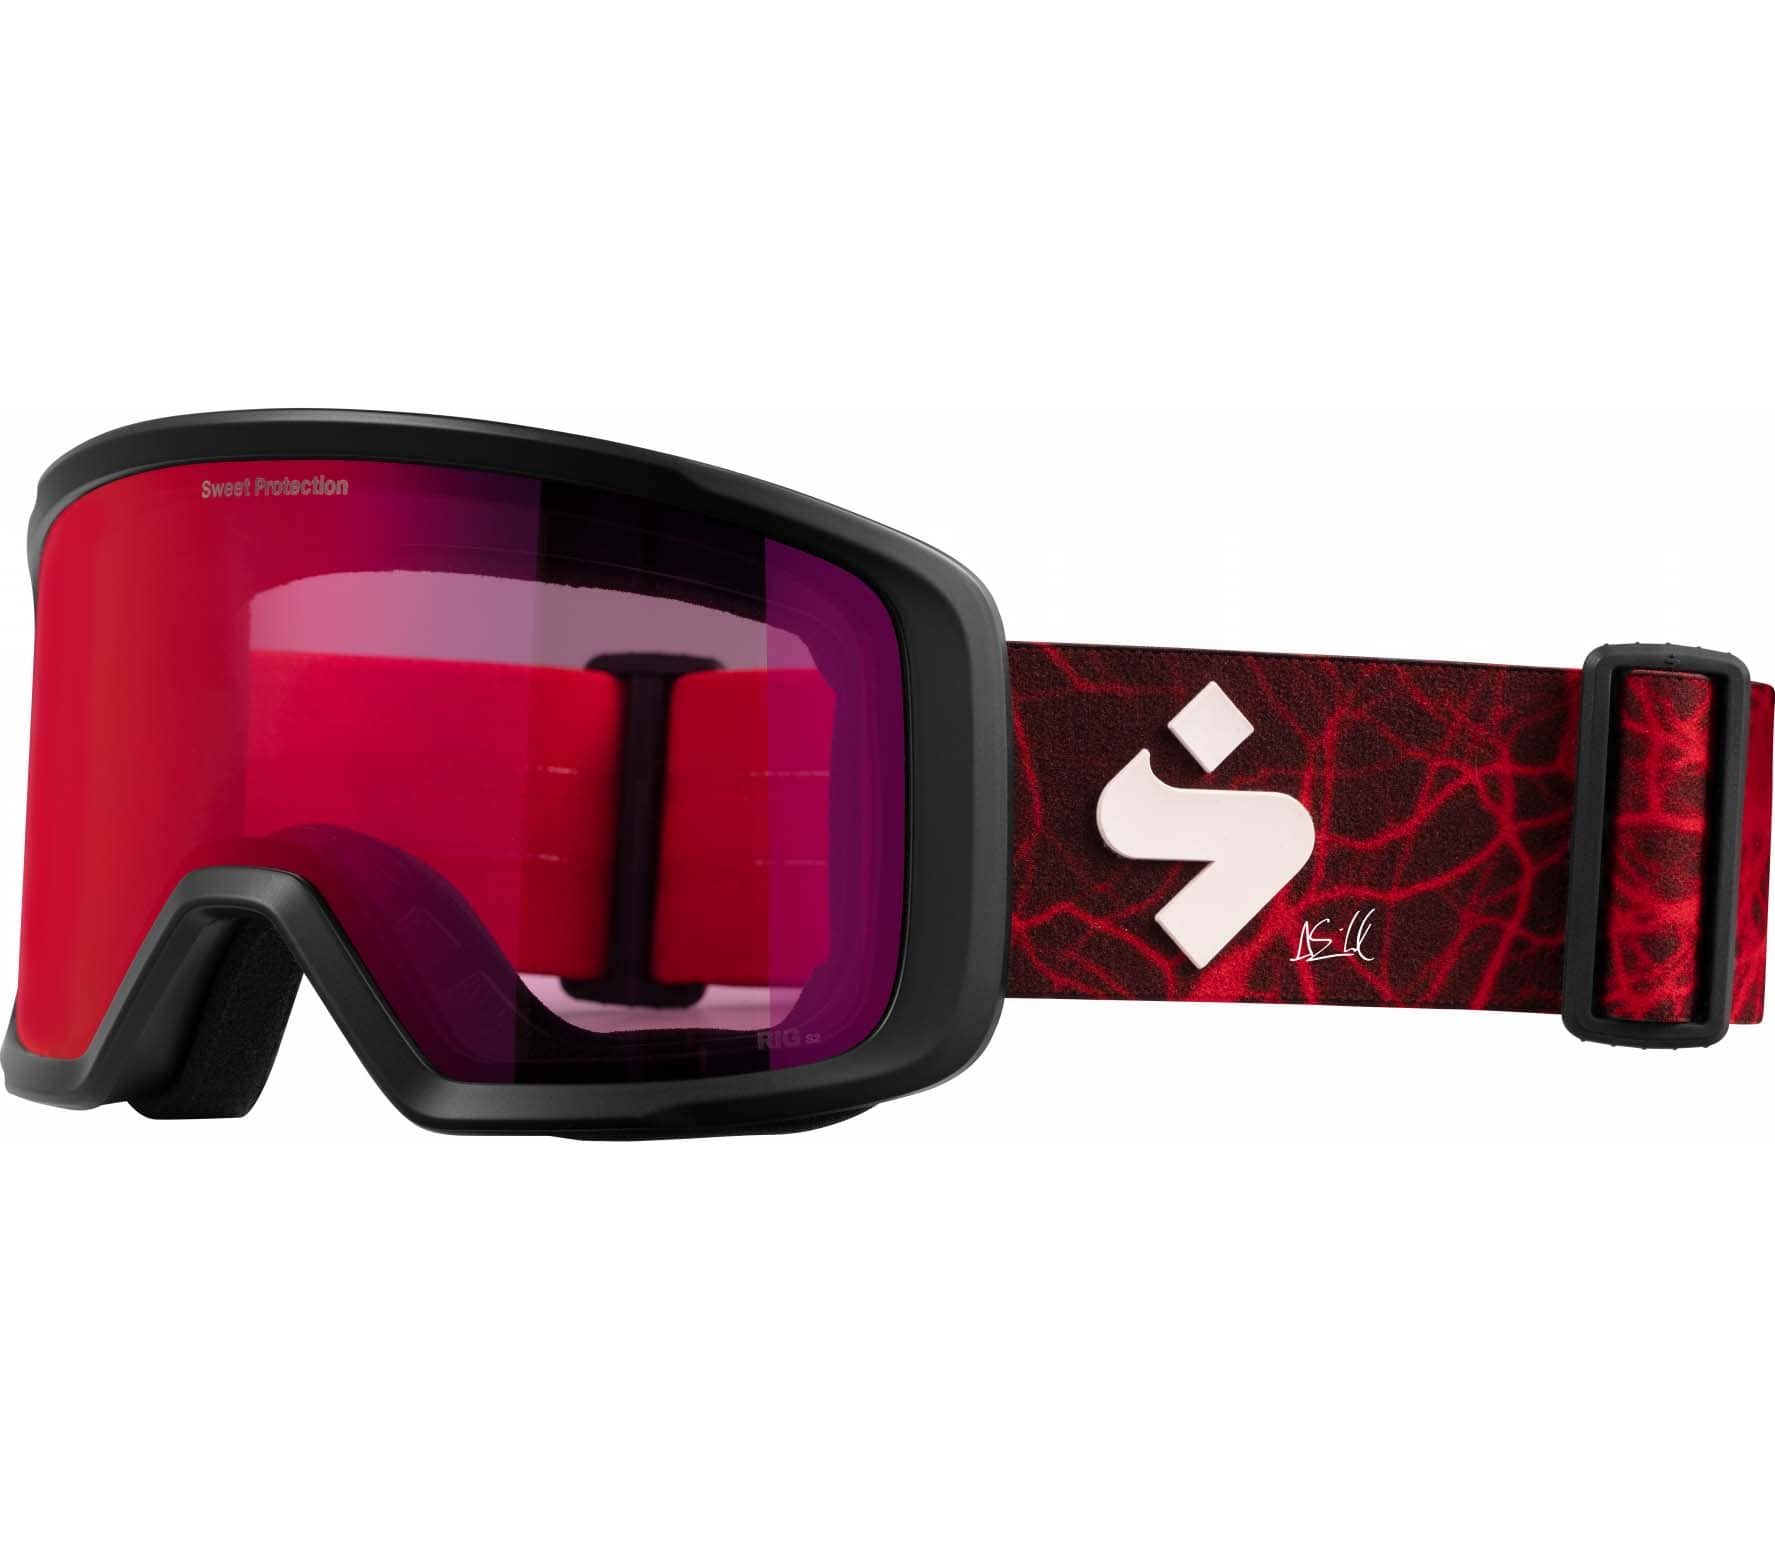 Firewall Svindal Collection Unisex Goggles